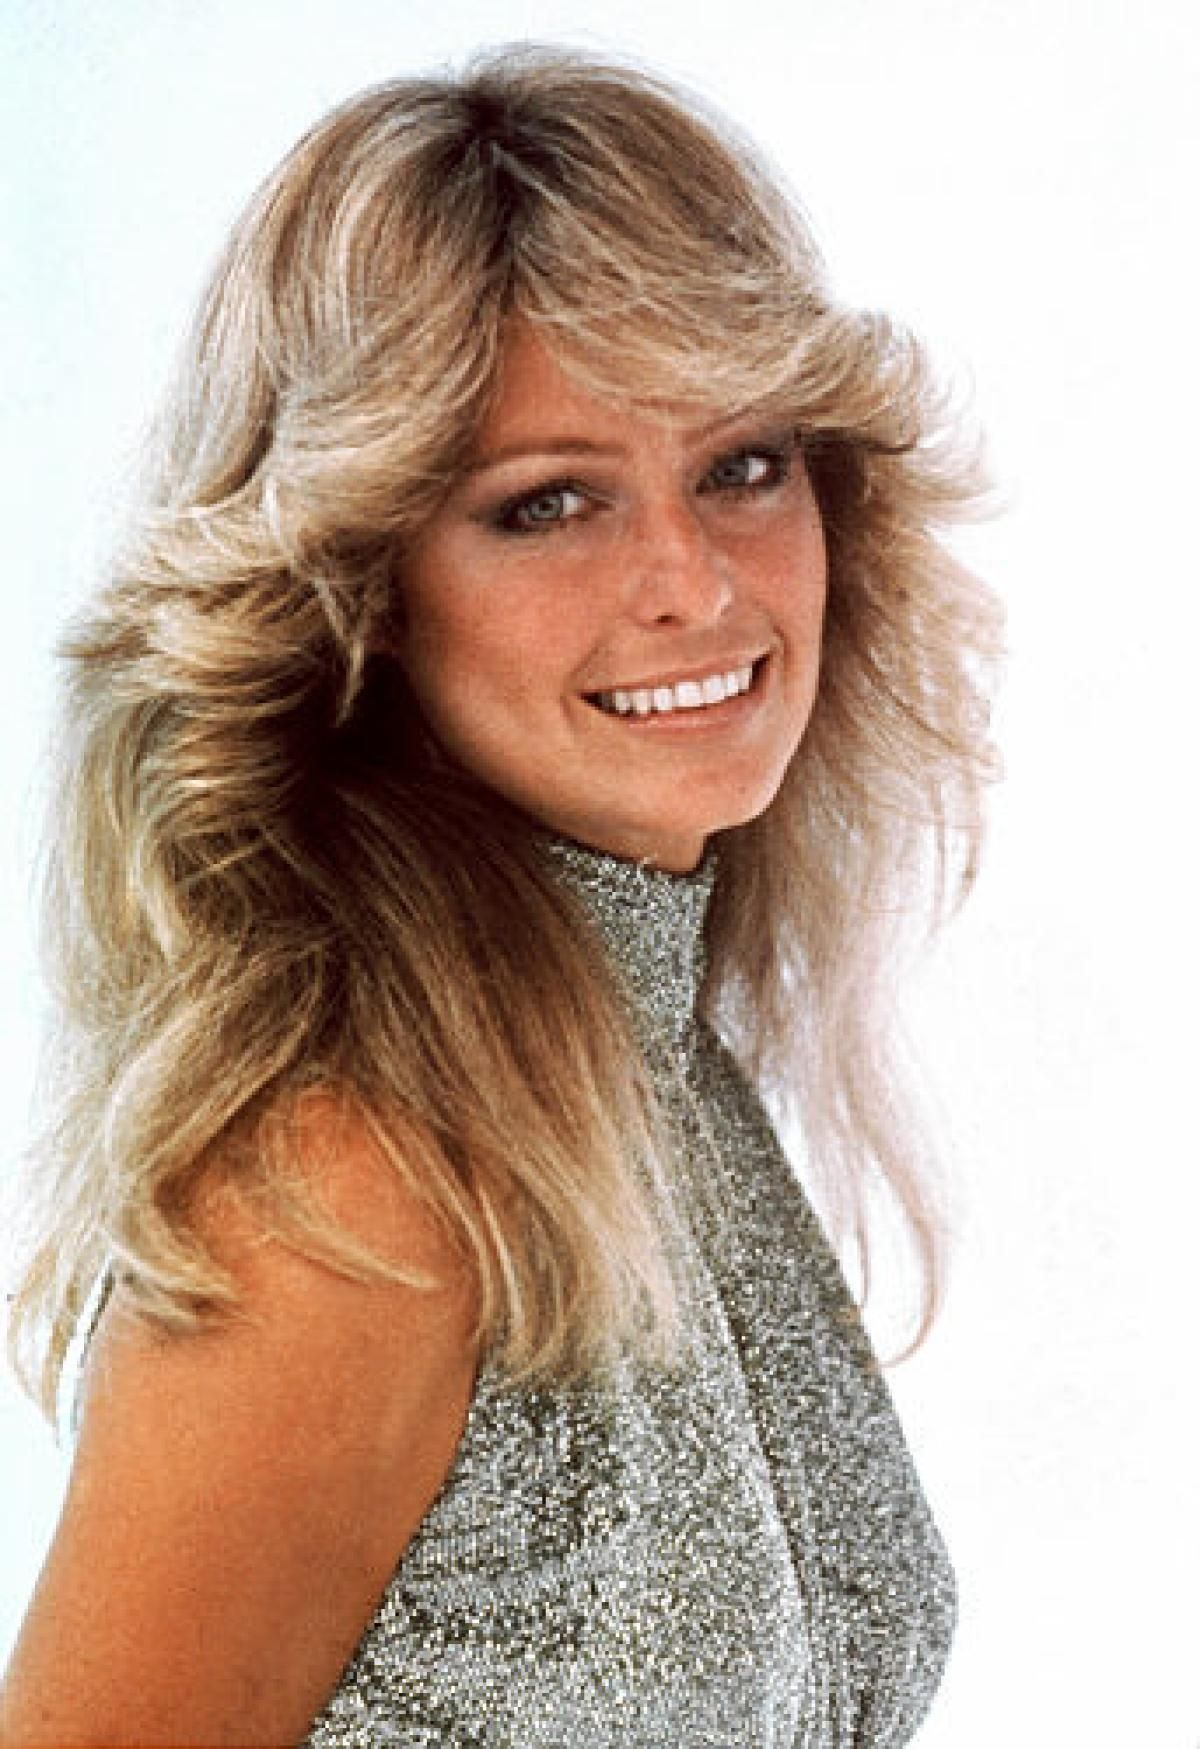 farrah fawcett hair by capital citiesfarrah fawcett hair, farrah fawcett hair lyrics, farrah fawcett poster, farrah fawcett parents, farrah fawcett 2009, farrah fawcett and cher, farrah fawcett death, farrah fawcett hair by capital cities, farrah fawcett imdb, farrah fawcett makeup, farrah fawcett 2000, farrah fawcett husband, farrah fawcett signature, farrah fawcett barbie, farrah fawcett young, farrah fawcett hair tutorial, farrah fawcett hair meaning, farrah fawcett skateboard, farrah fawcett barbie ebay, farrah fawcett interview